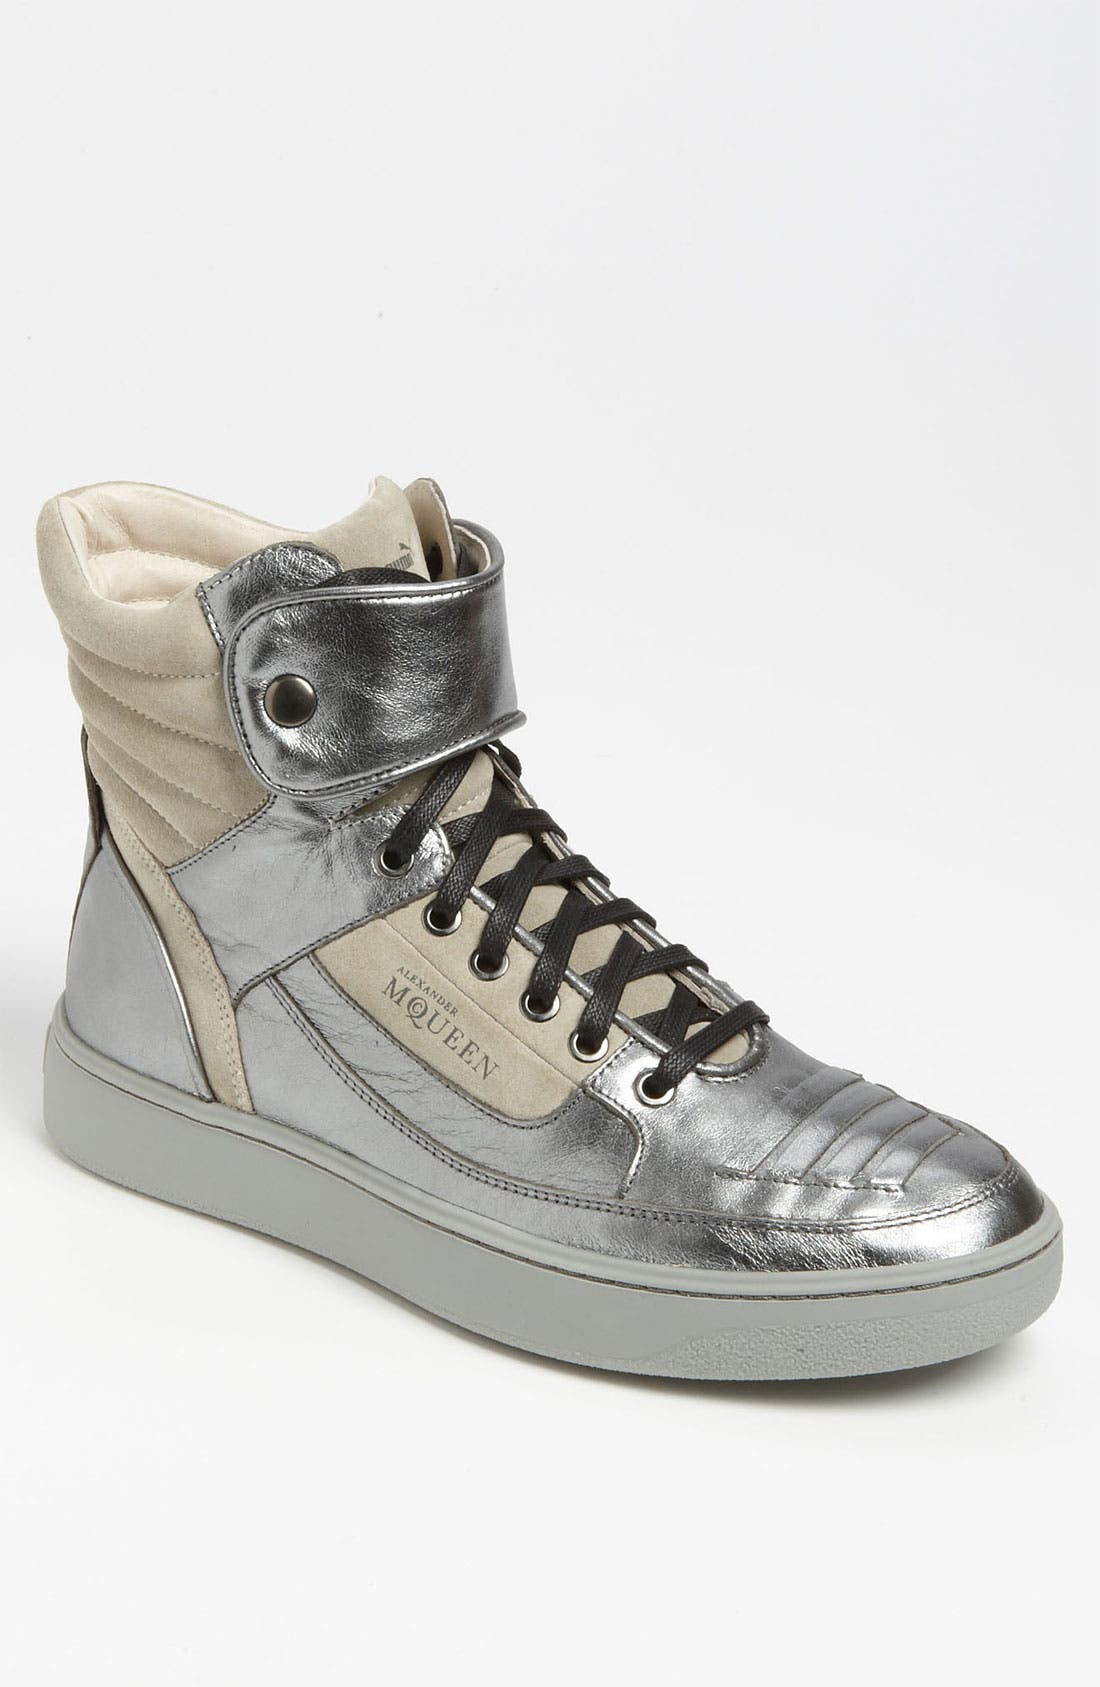 Alternate Image 1 Selected - Alexander McQueen PUMA 'Joust' Sneaker